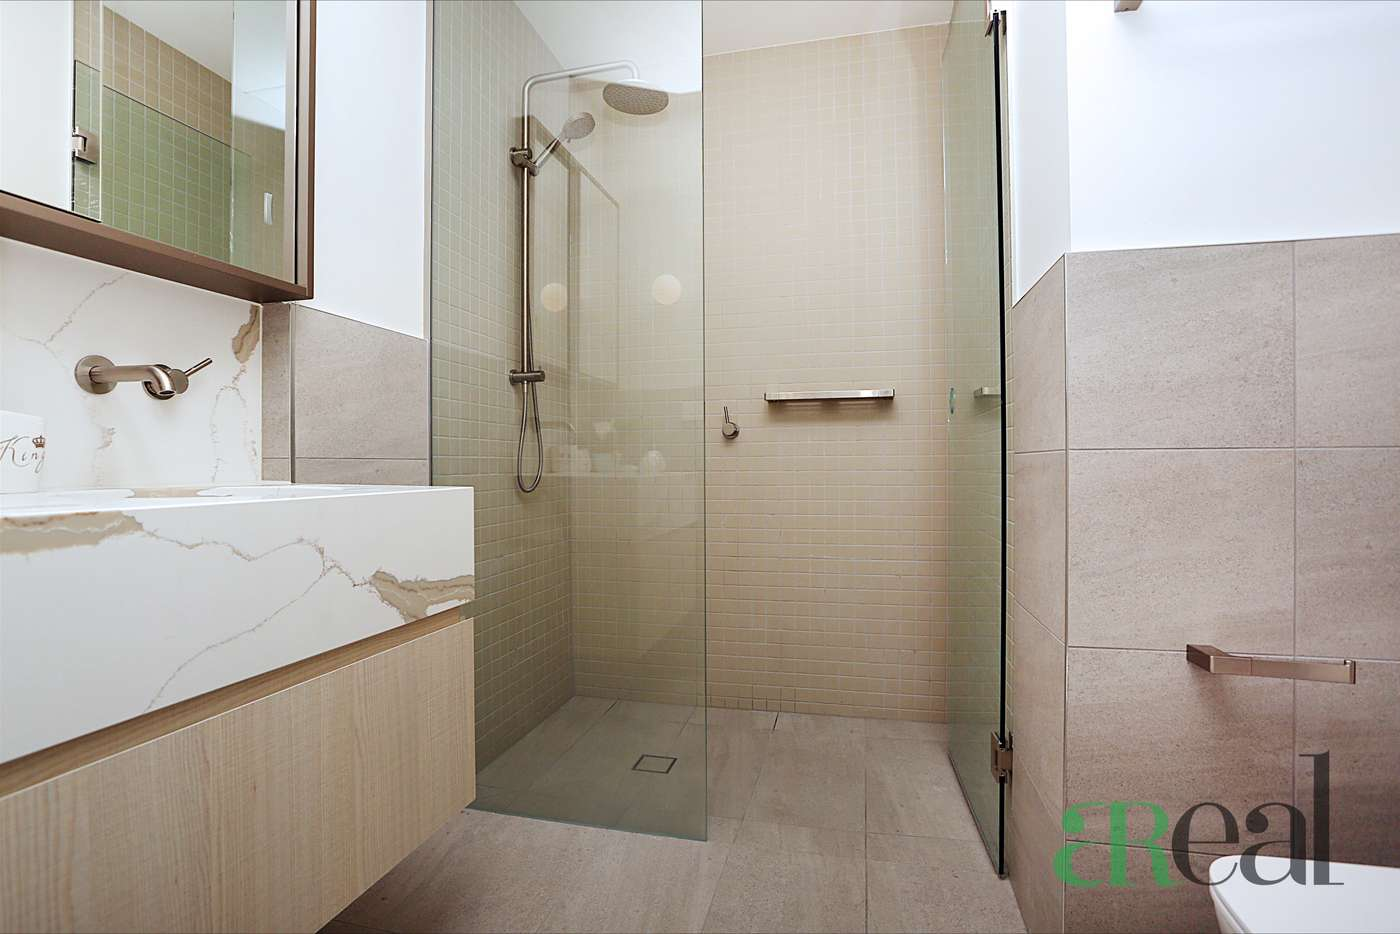 Seventh view of Homely apartment listing, 911/393 Spencer Street, West Melbourne VIC 3003